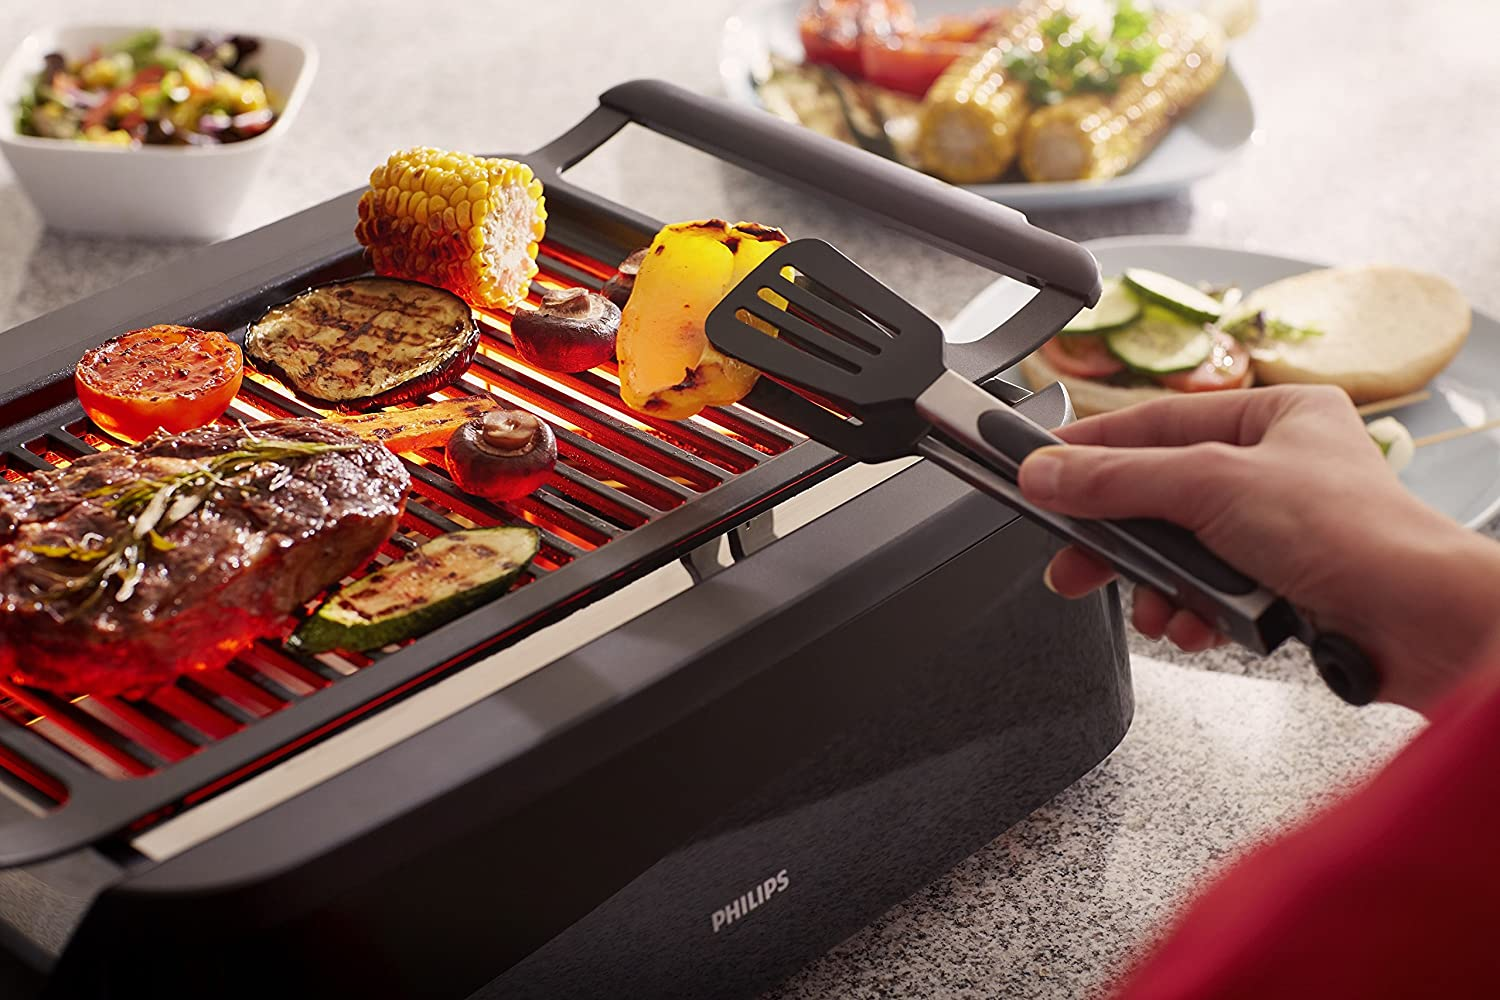 Amazon.com: Philips Smoke Less Indoor Grill HD6371/94: Kitchen U0026 Dining